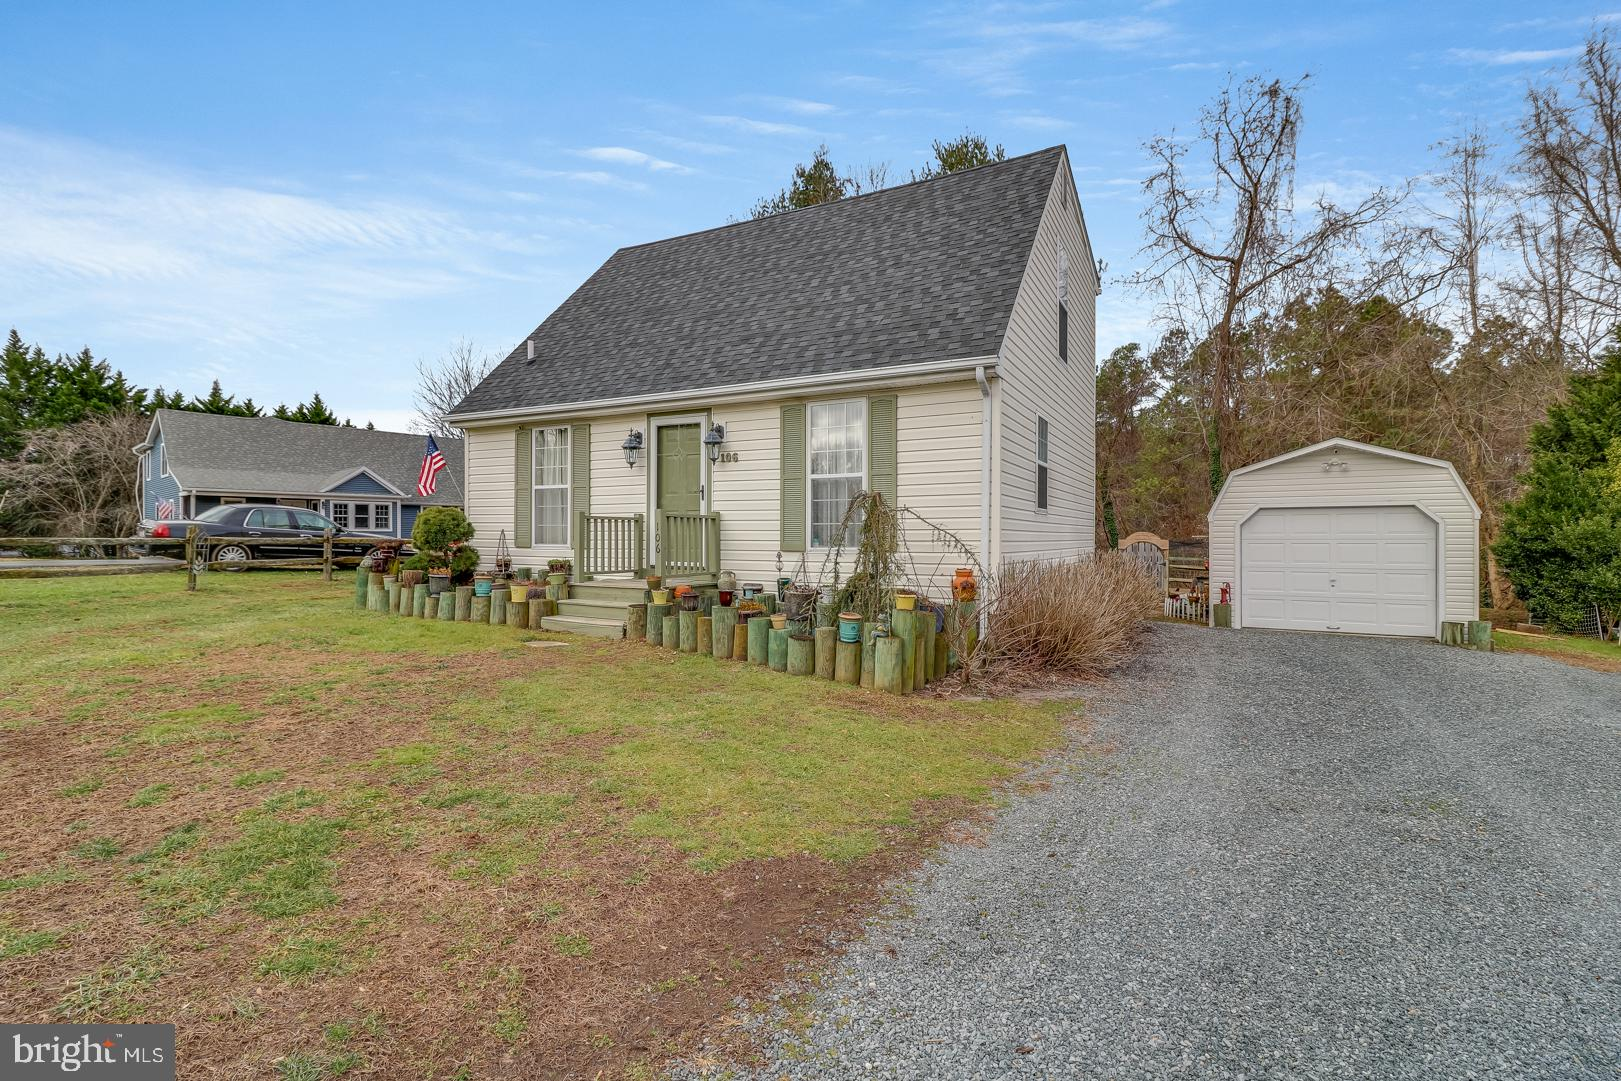 LOCATION, LOCATION, LOCATION! STUNNING CAPE COD IN THE CHARMING TOWN OF CHURCH HILL. FEATURING 3 BED